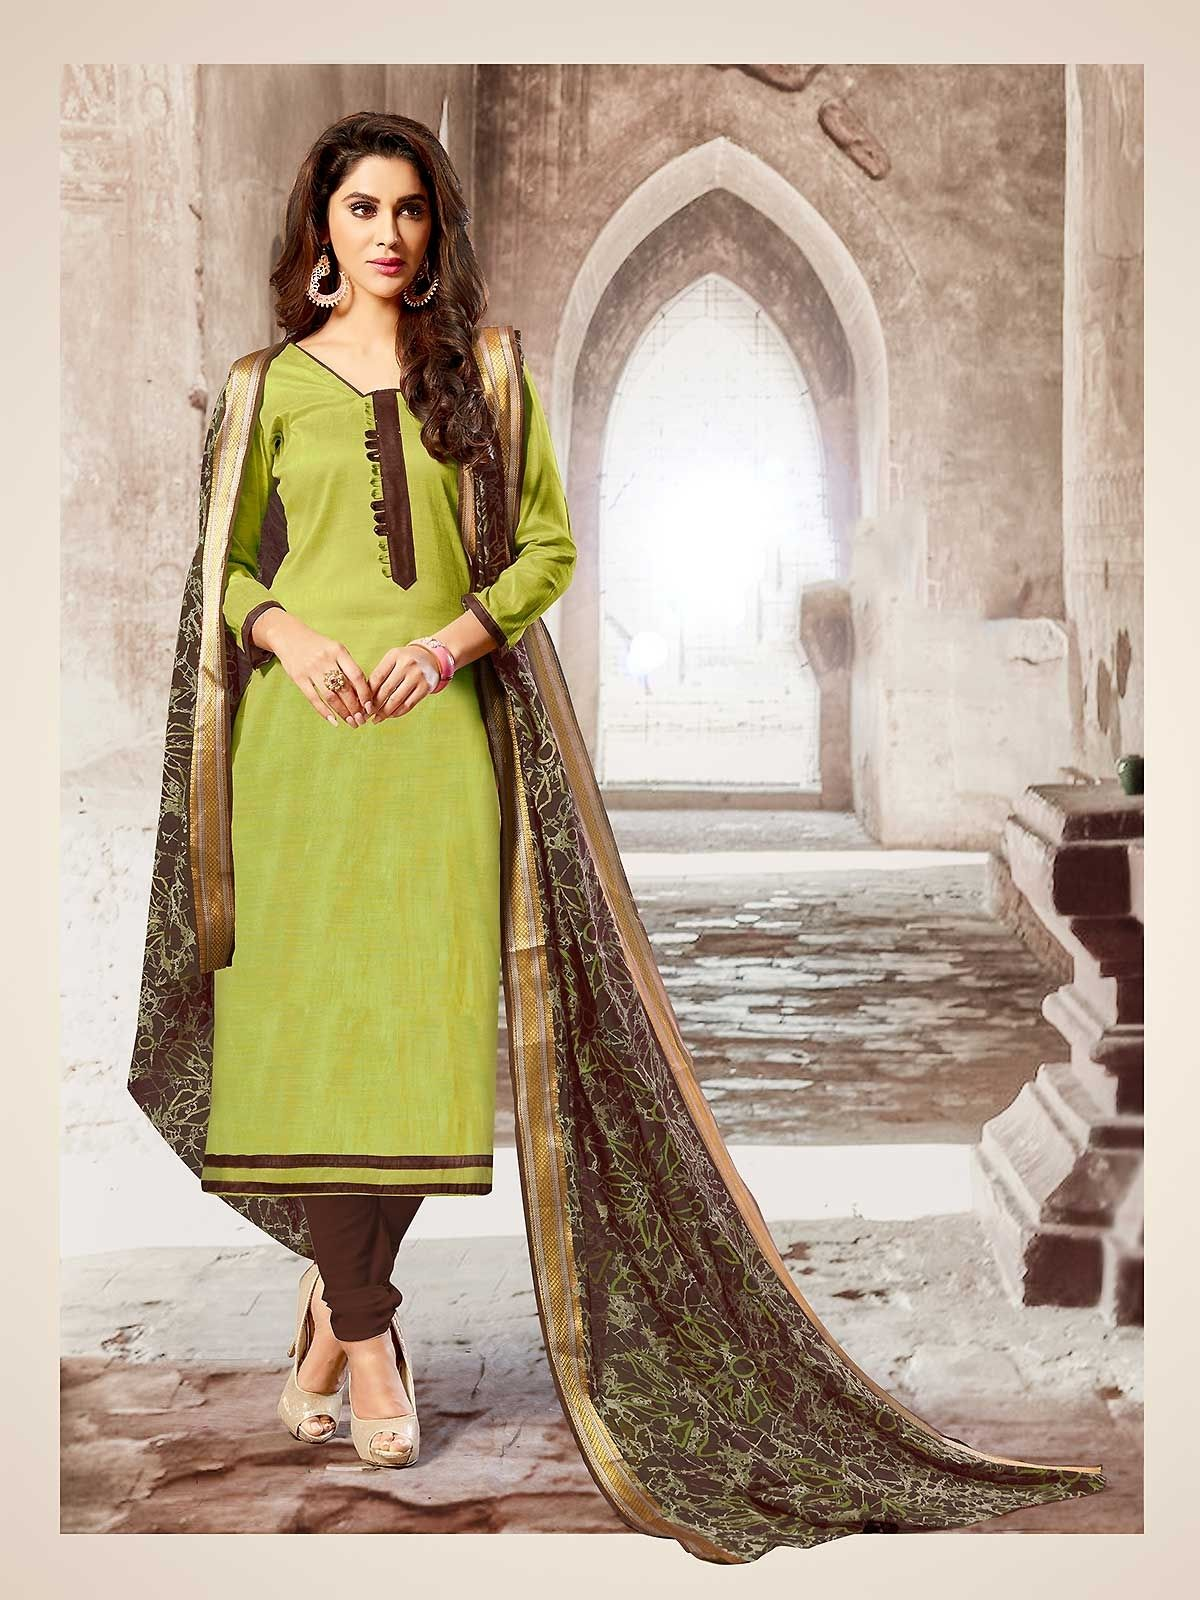 6344761ddd Buy green color cotton salwar suit, ladies shalwar kameez collection with  latest designs online for women from our online shopping store.